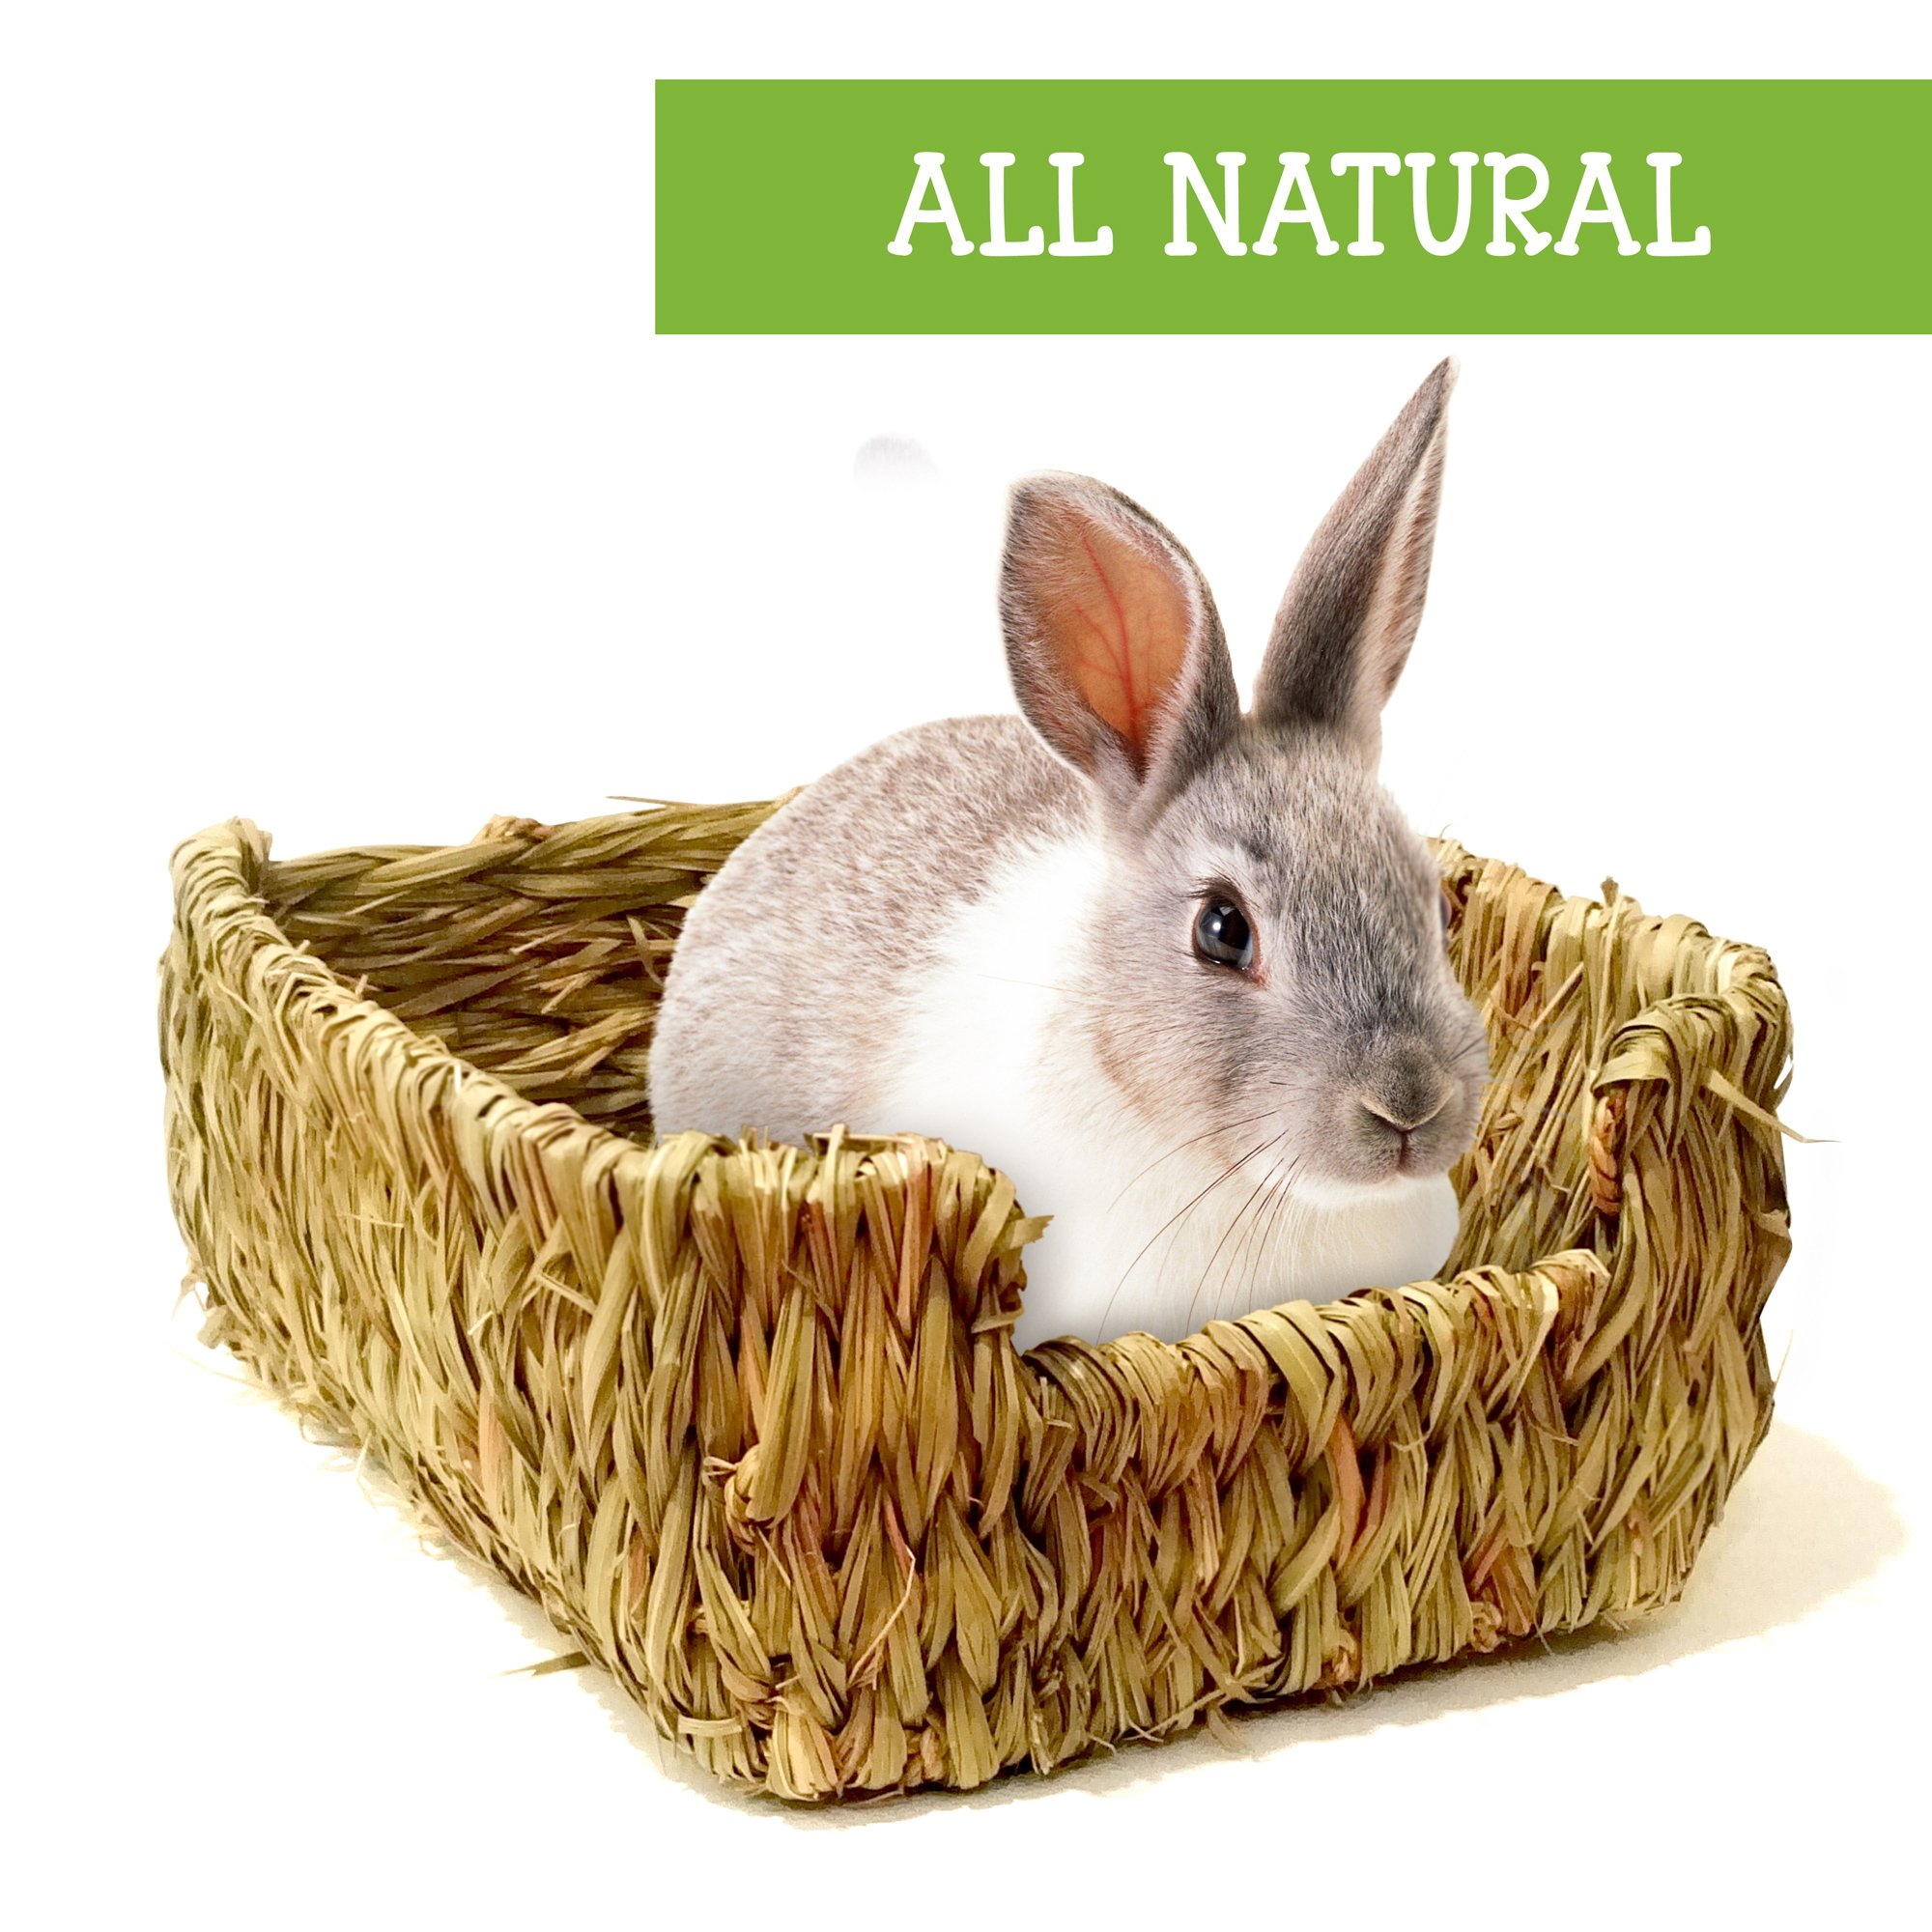 Naturally PAWesome's Woven Grass Bed Furry Critter Lounge for Rabbits, Guinea Pigs, Chinchillas, Hamsters, Ferrets, and Other Fuzzy Pet Rodents